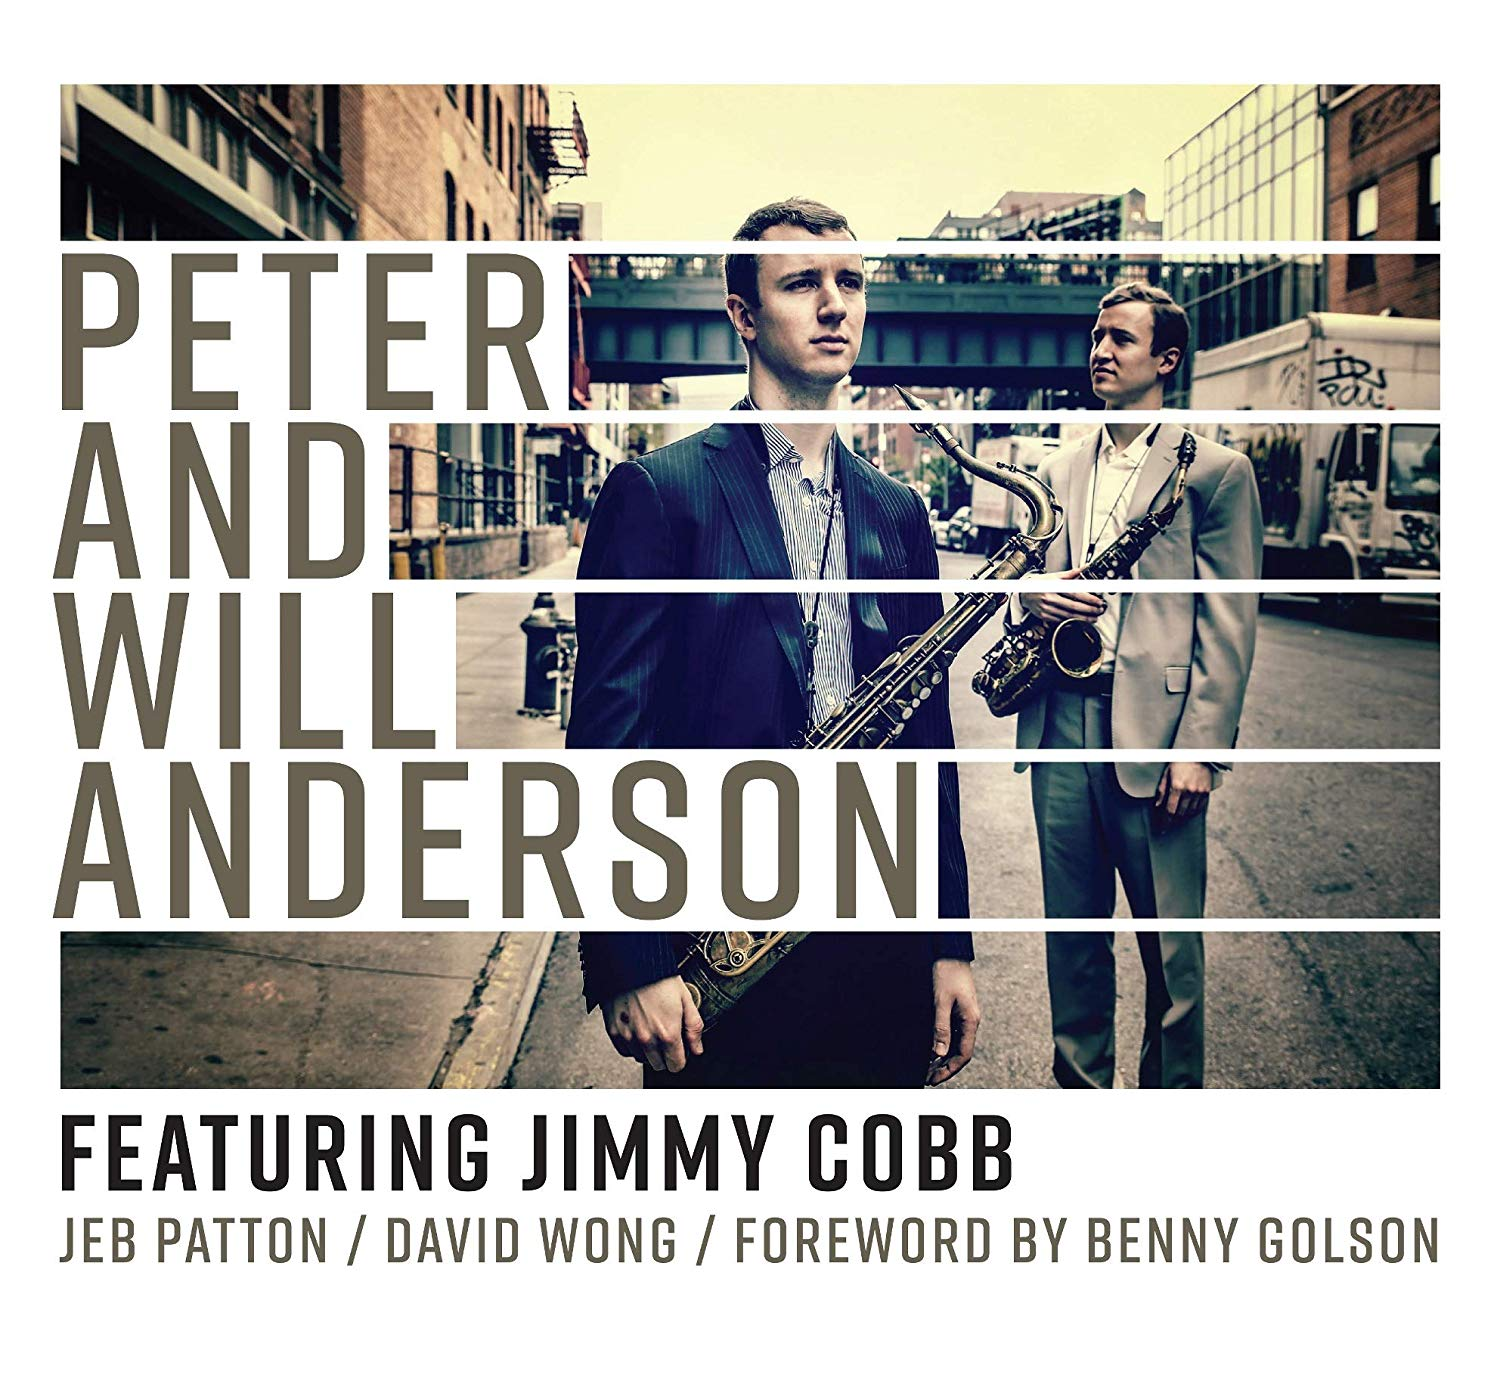 PETER AND WILL ANDERSON - Peter And Will Anderson featuring Jimmy Cobb cover